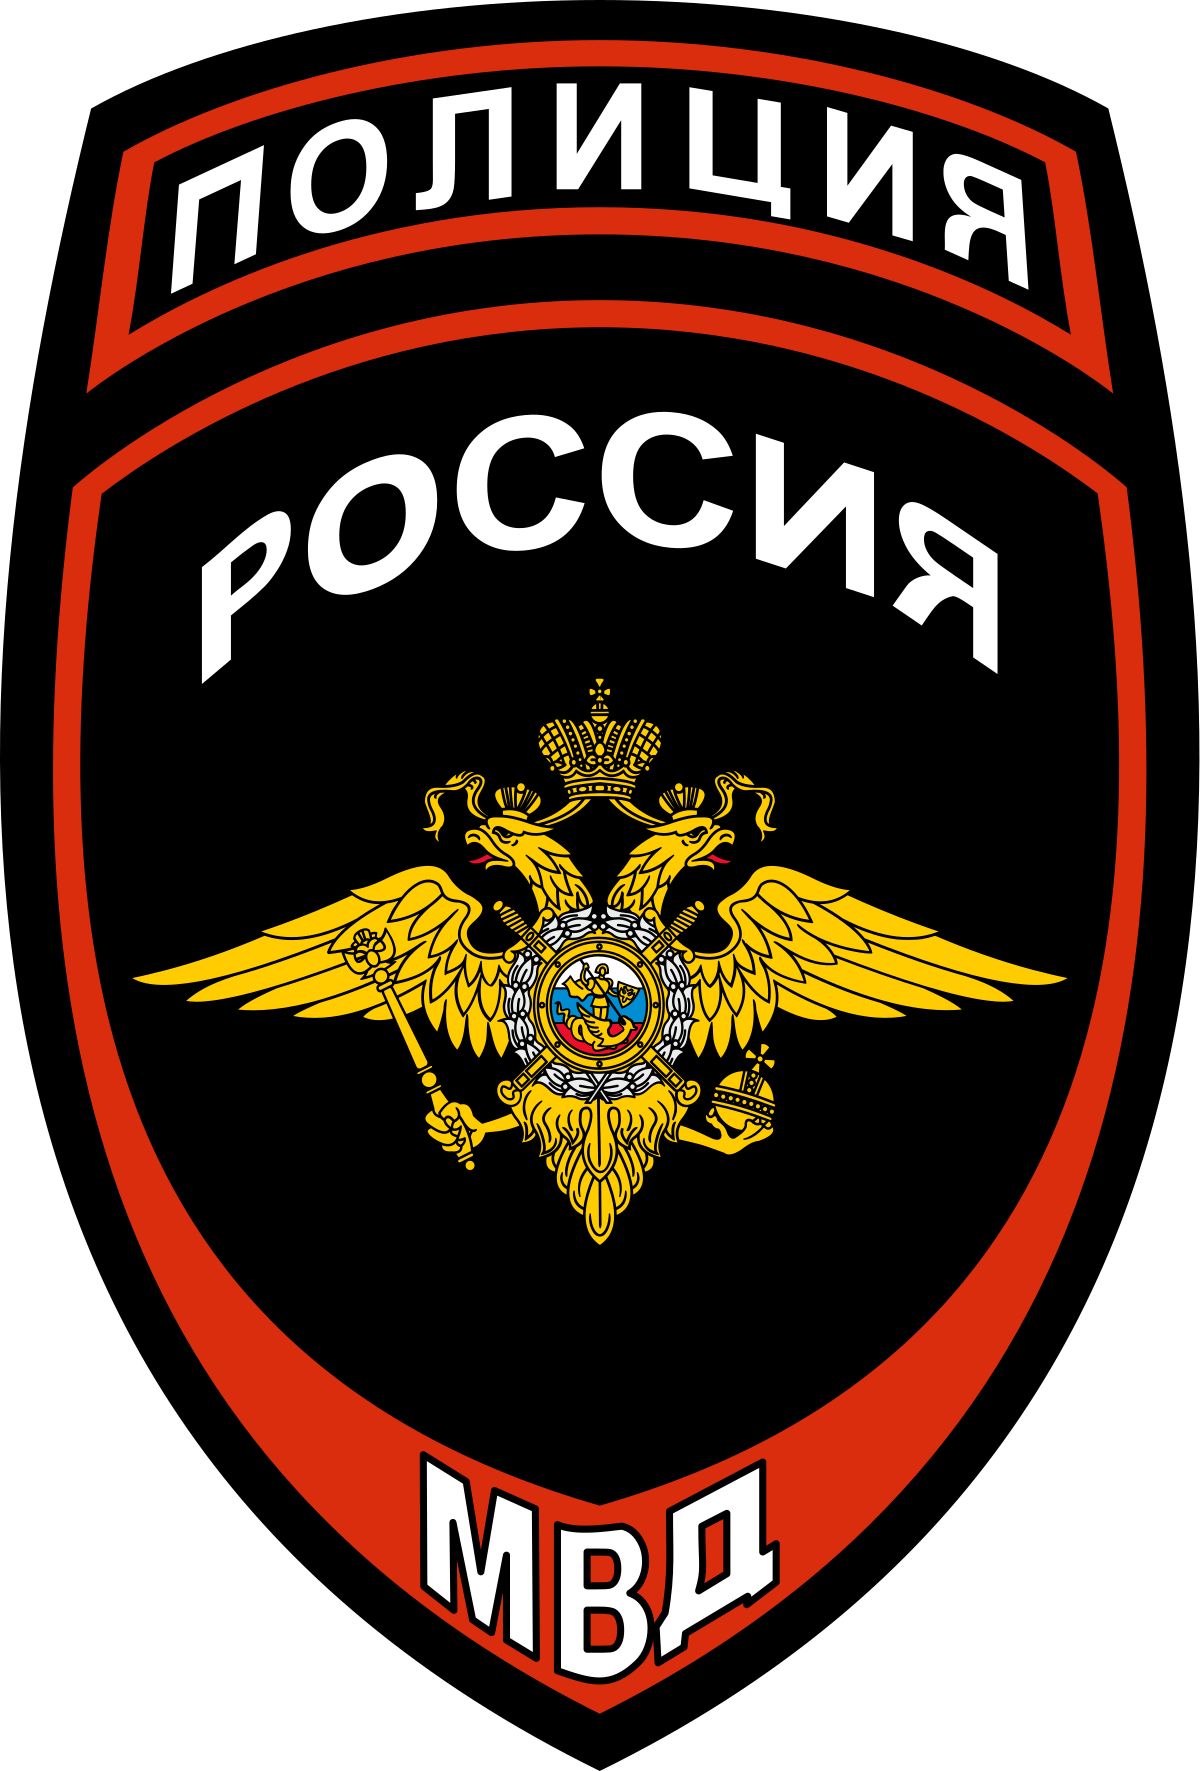 Police clipart jacket. Of russia wikipedia